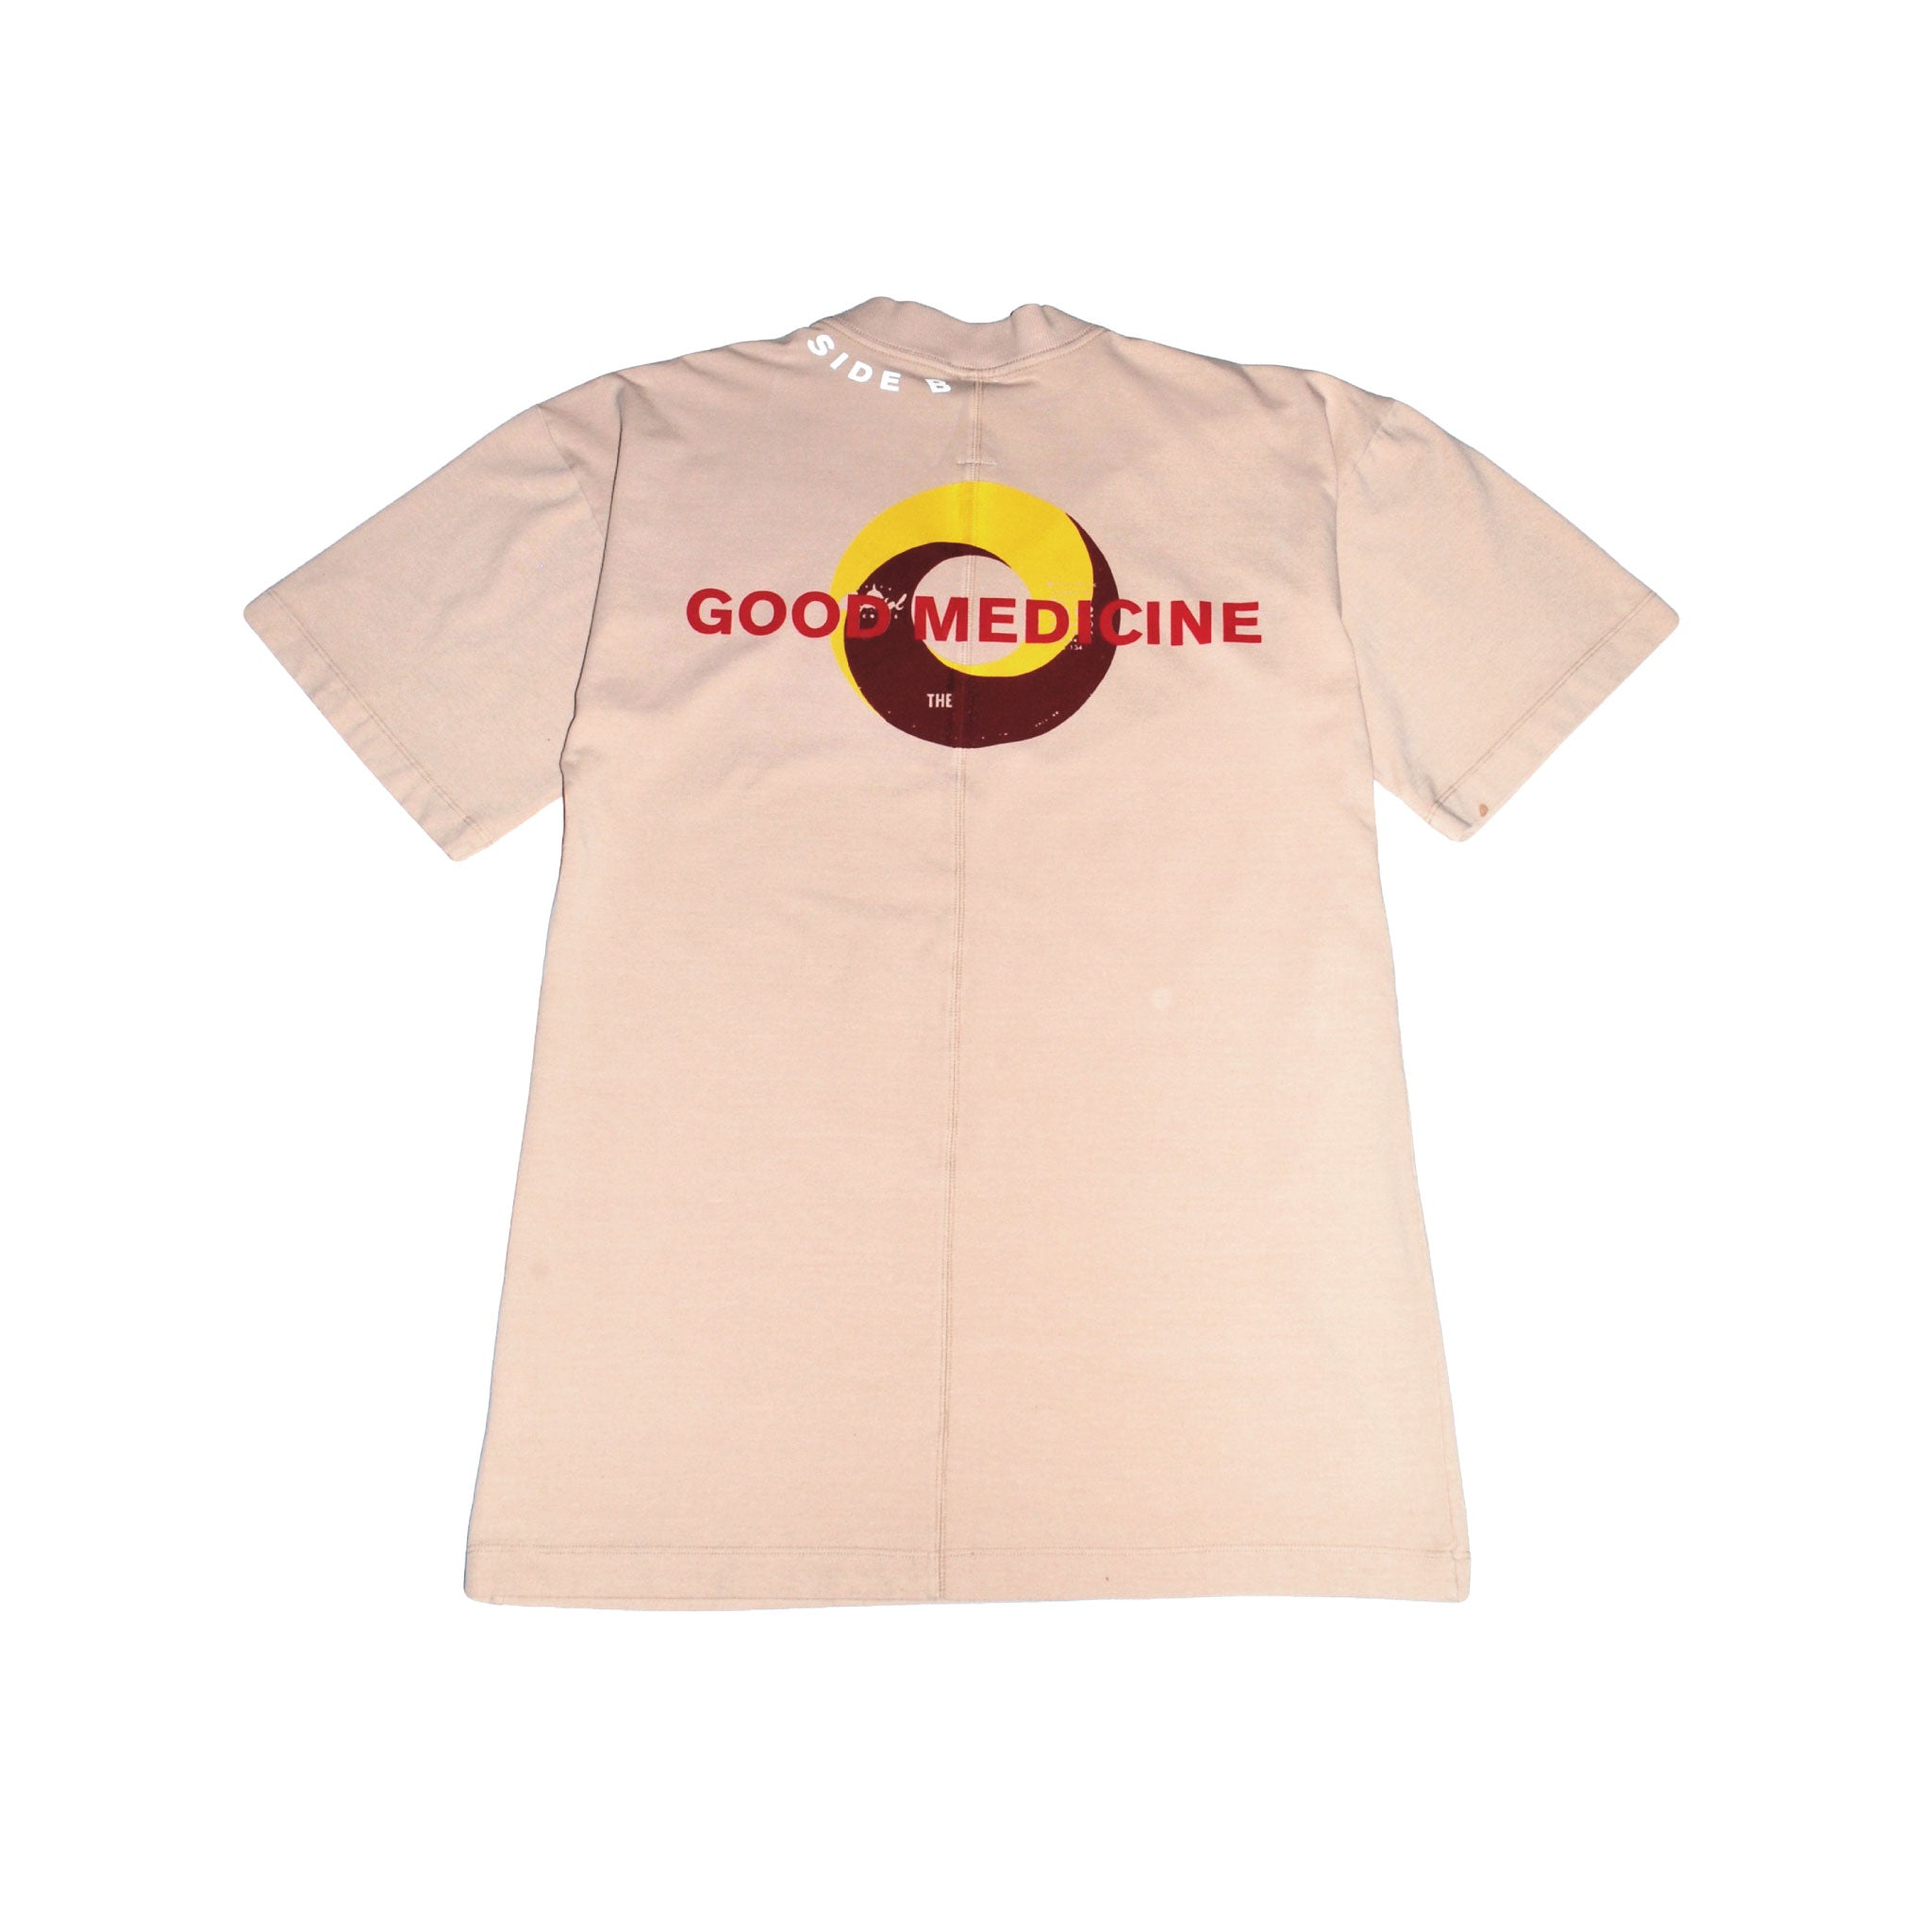 GOOD MEDICINE T-Shirt - The Incorporated